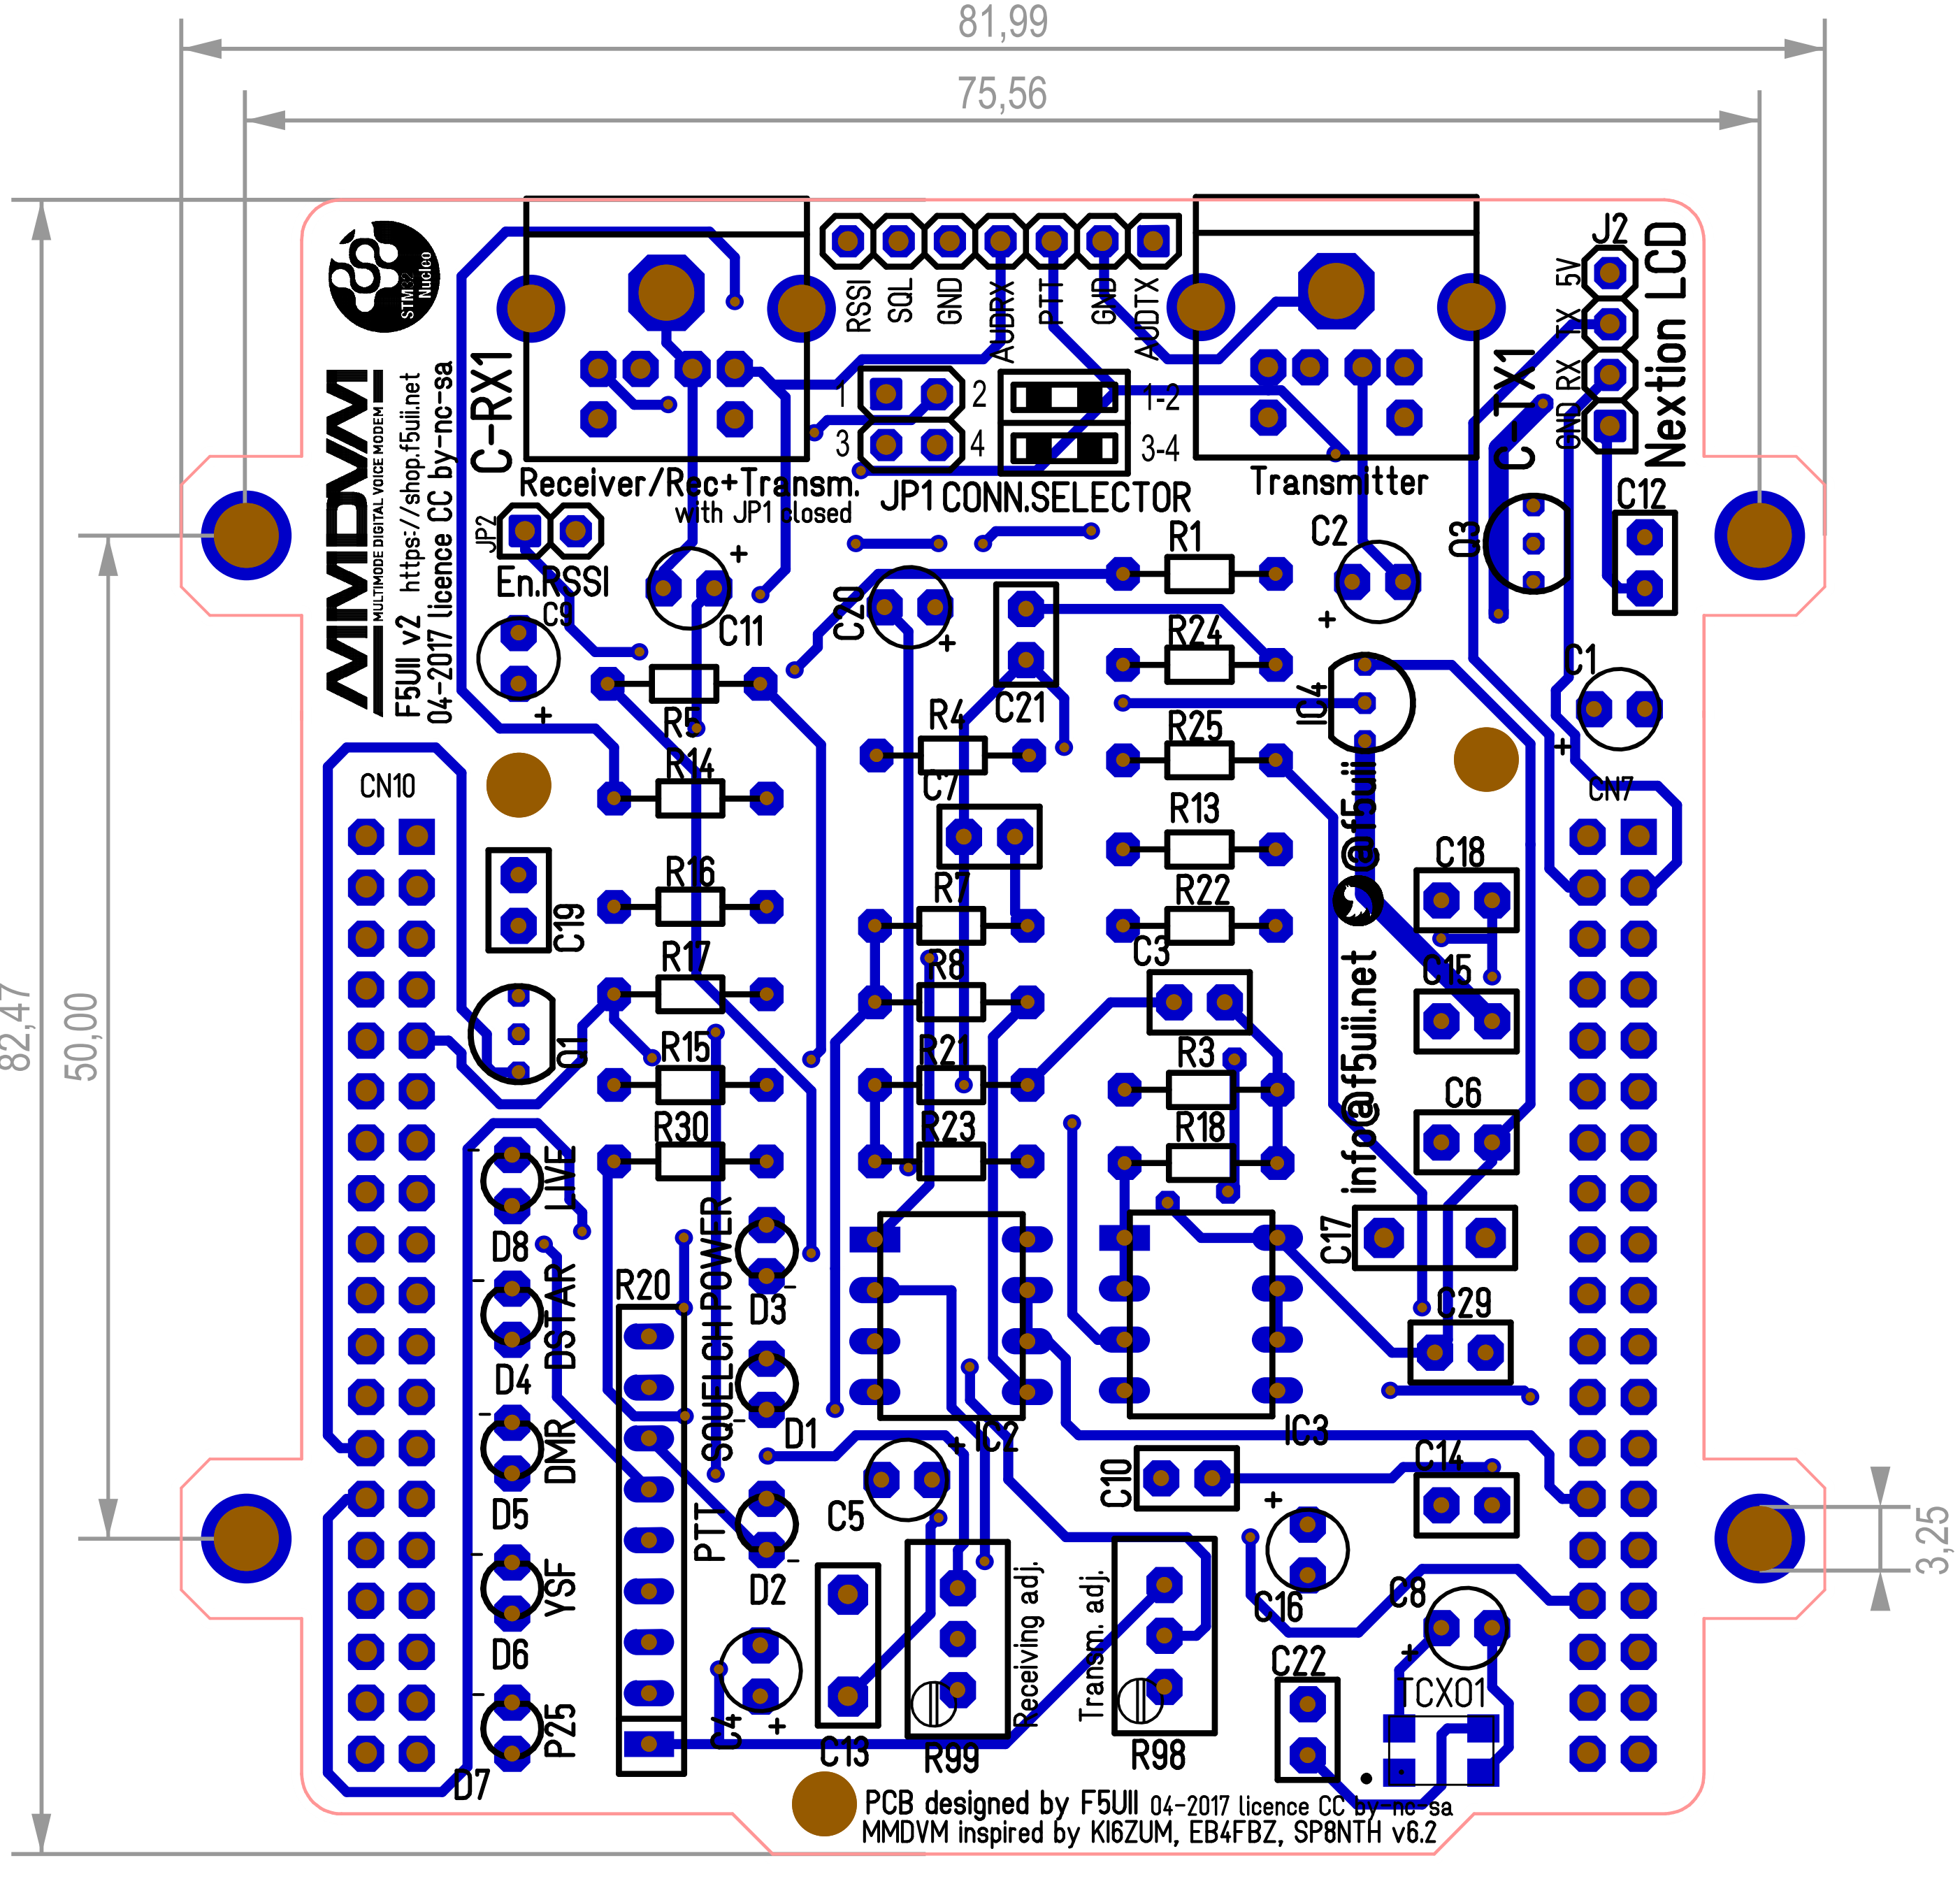 Mmdvm Shield For Stm32 Nucleo Diagram Pcb Gerber Bom P25 Wiring Top View Dimensions In Mm